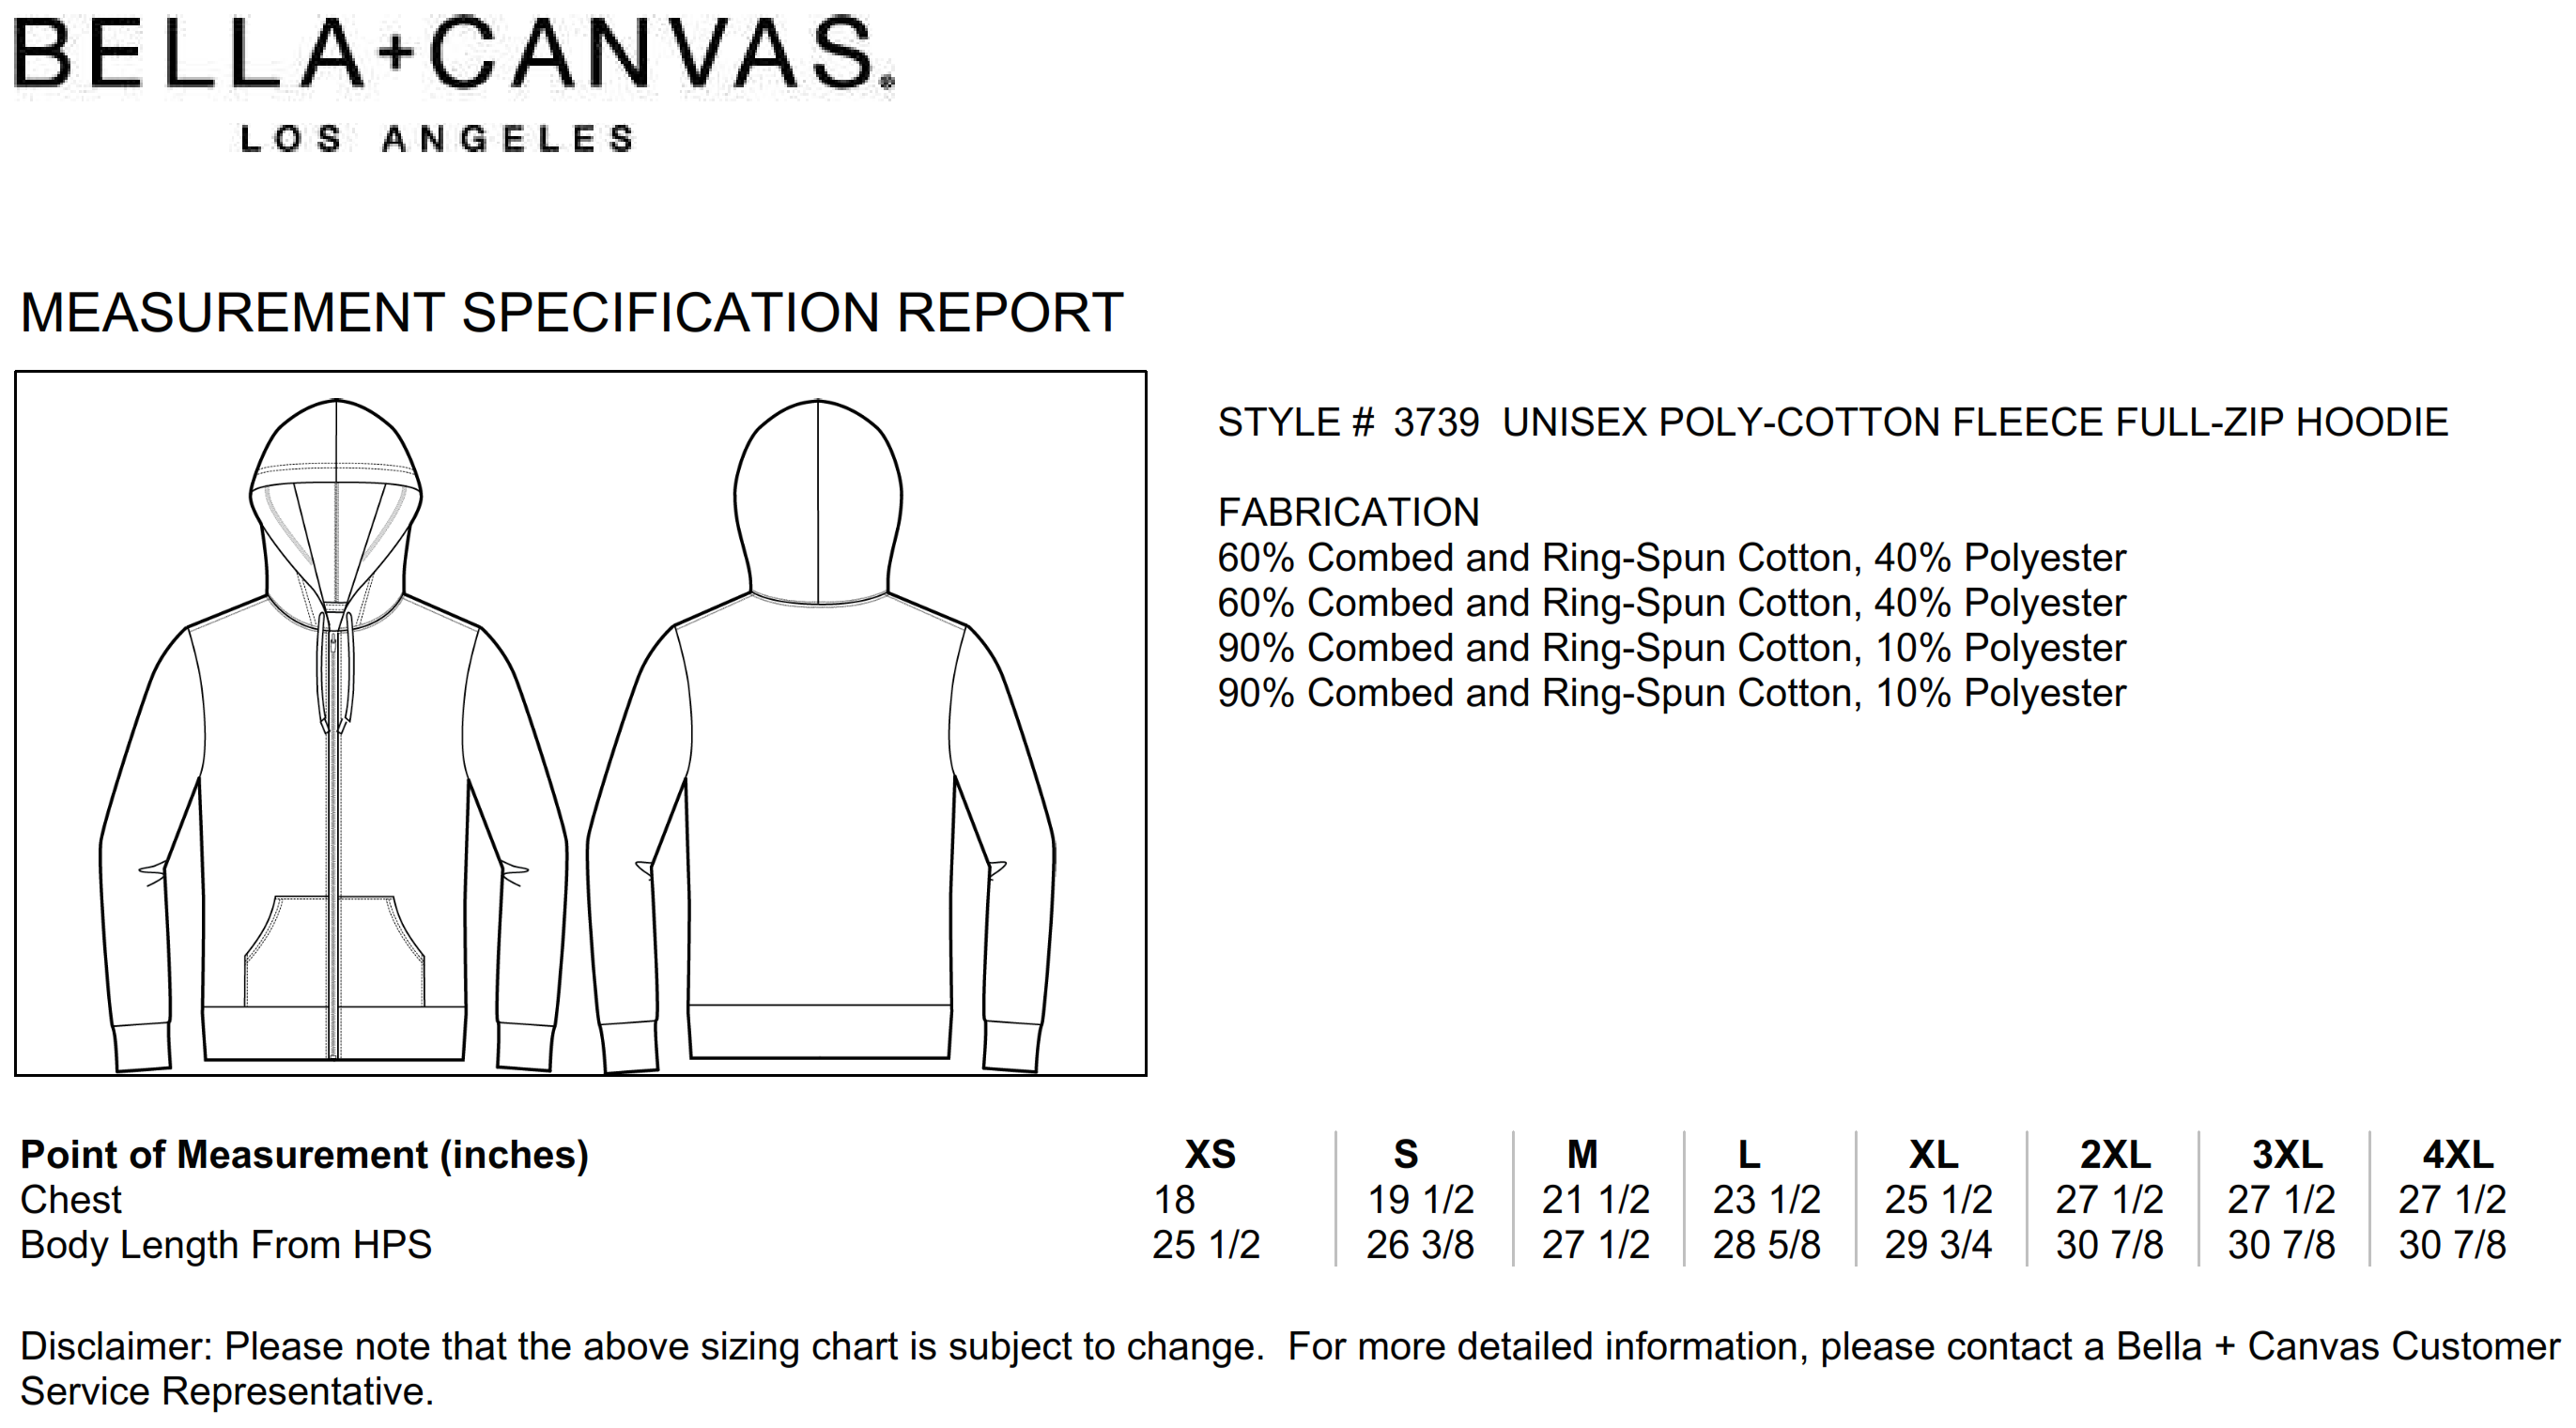 Bella+Canvas: Unisex Poly-Cotton Full Zip Hoodie 3739